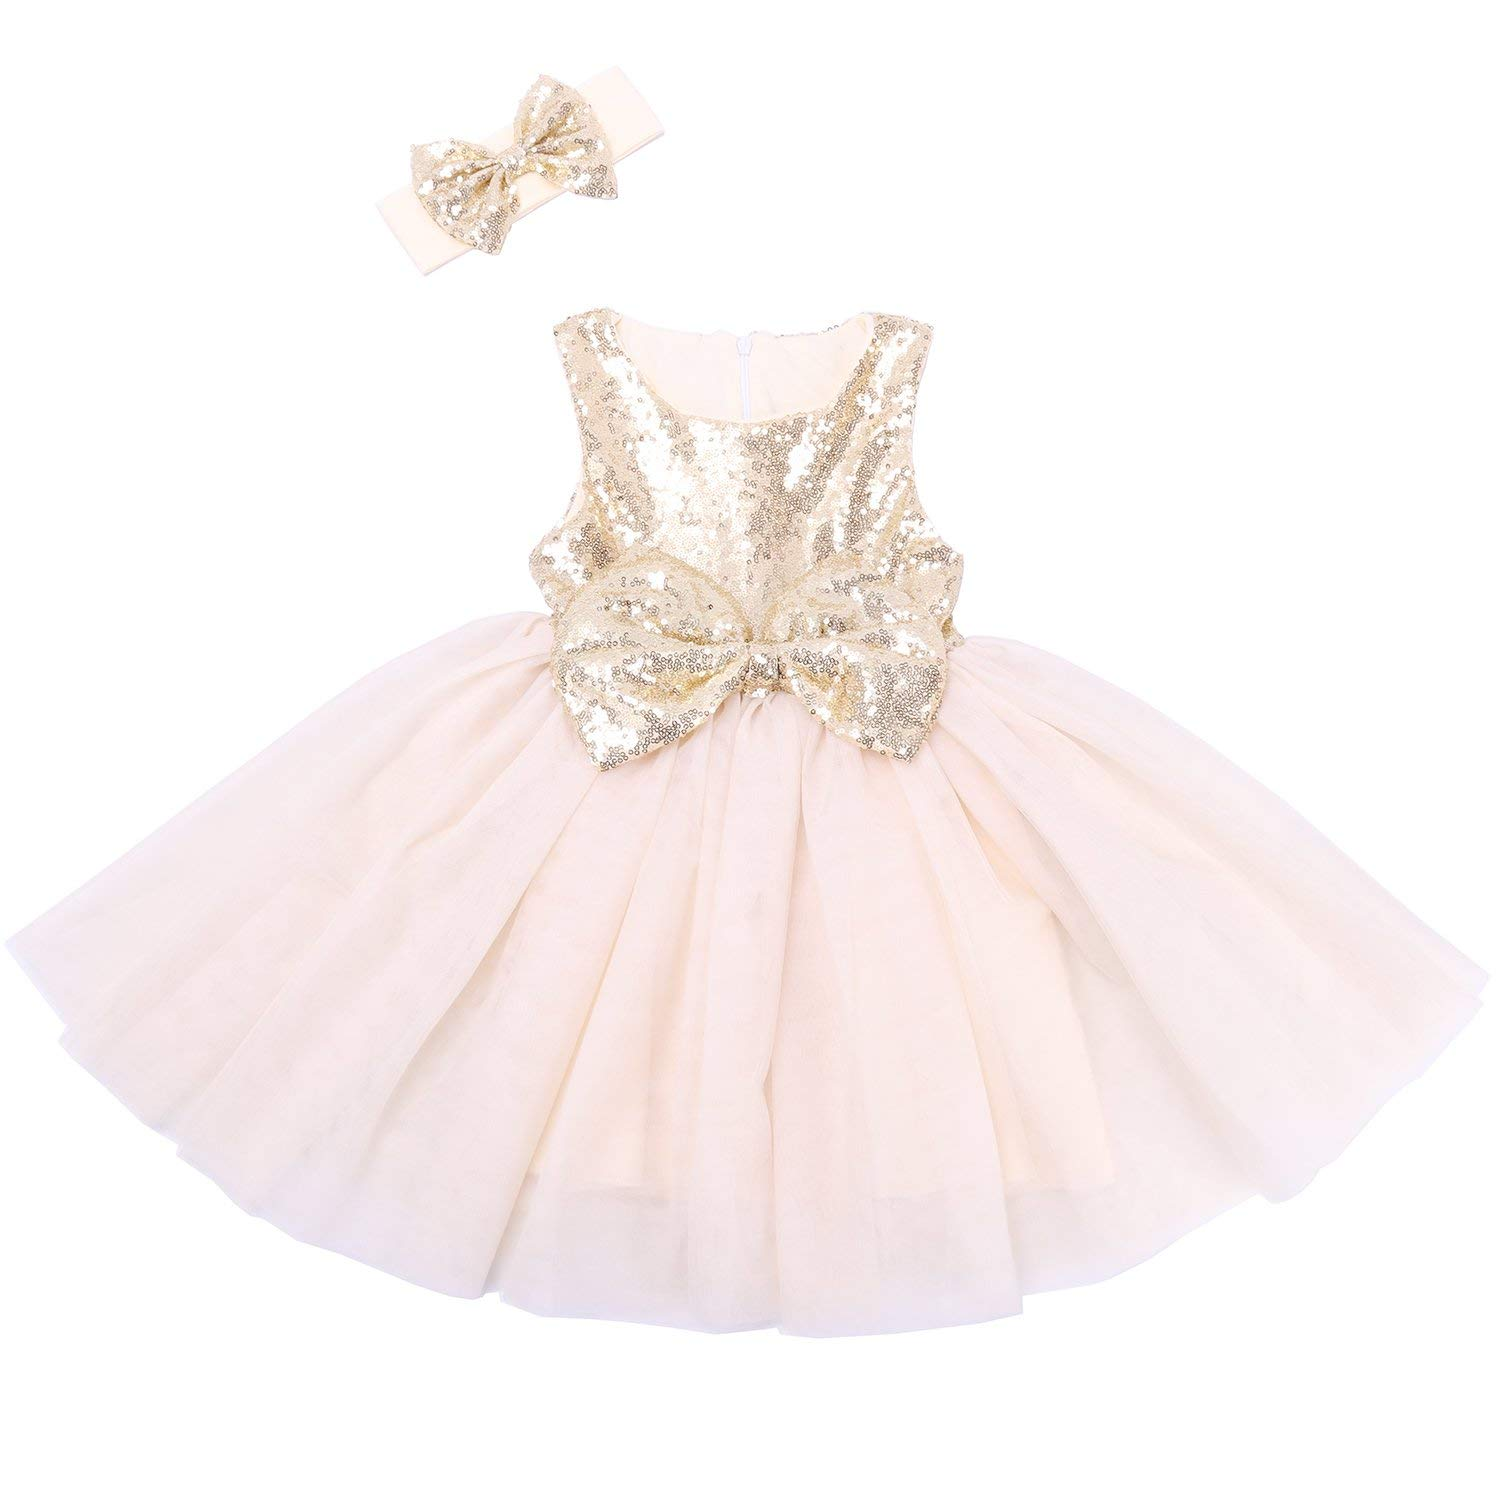 929ae9ce2 Get Quotations · Cilucu Flower Girl Dresses Toddlers Sequin Party Dress Tutu  Prom Pageant Dresses Gown Rose Gold/